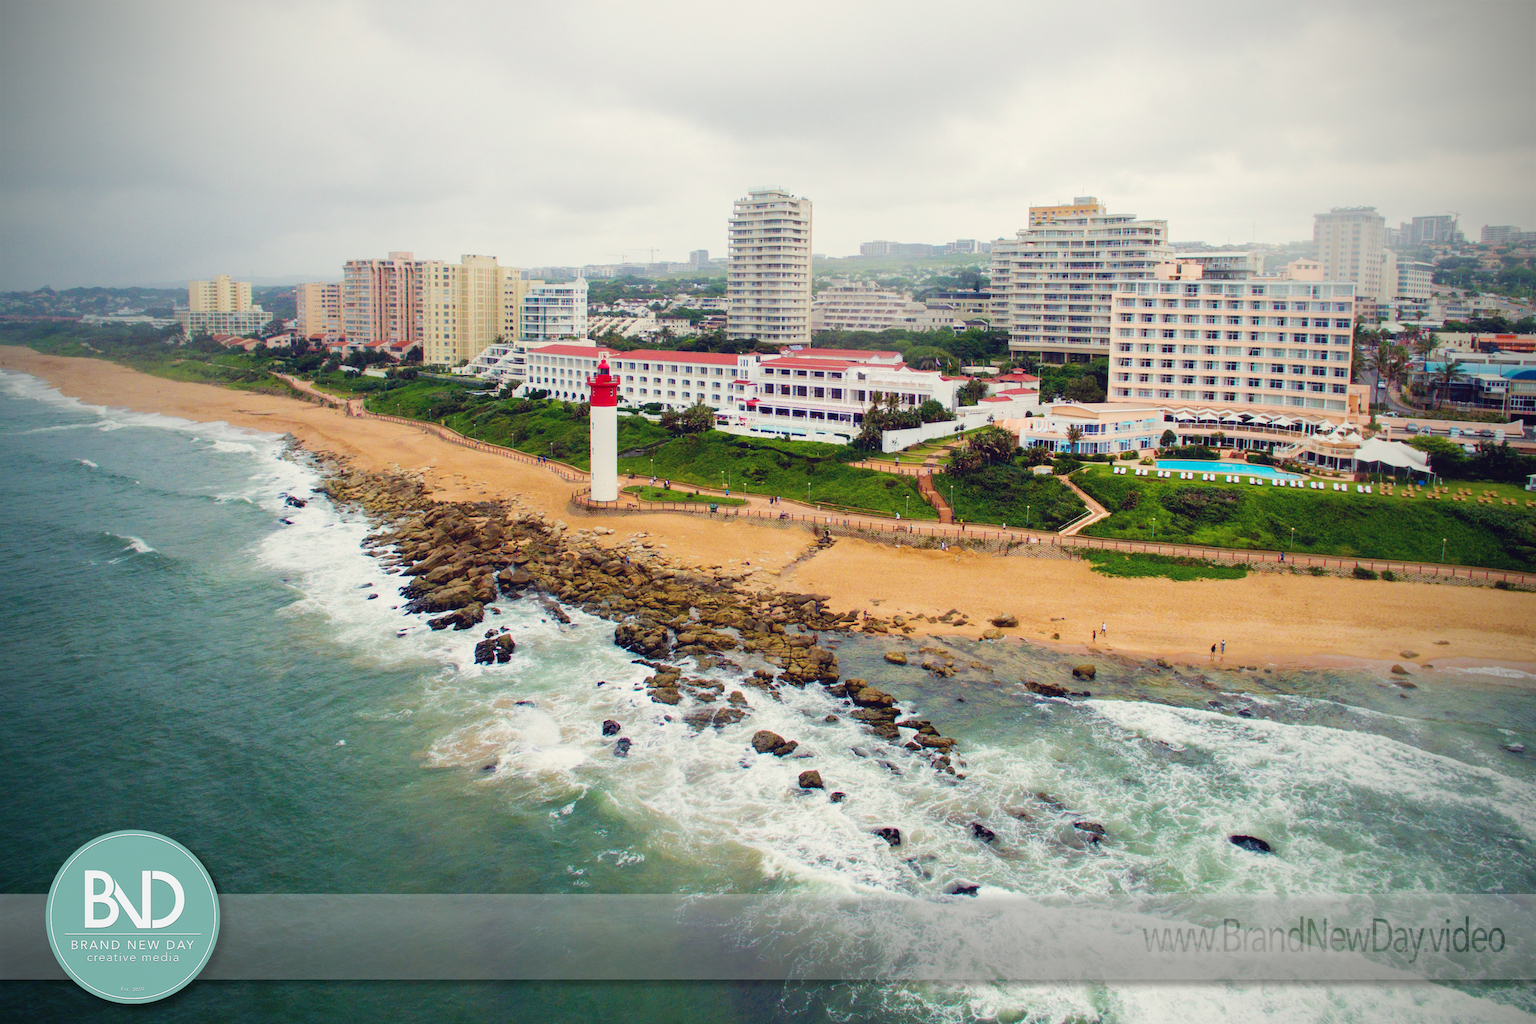 Videographers & Photographers _ Based in Durban